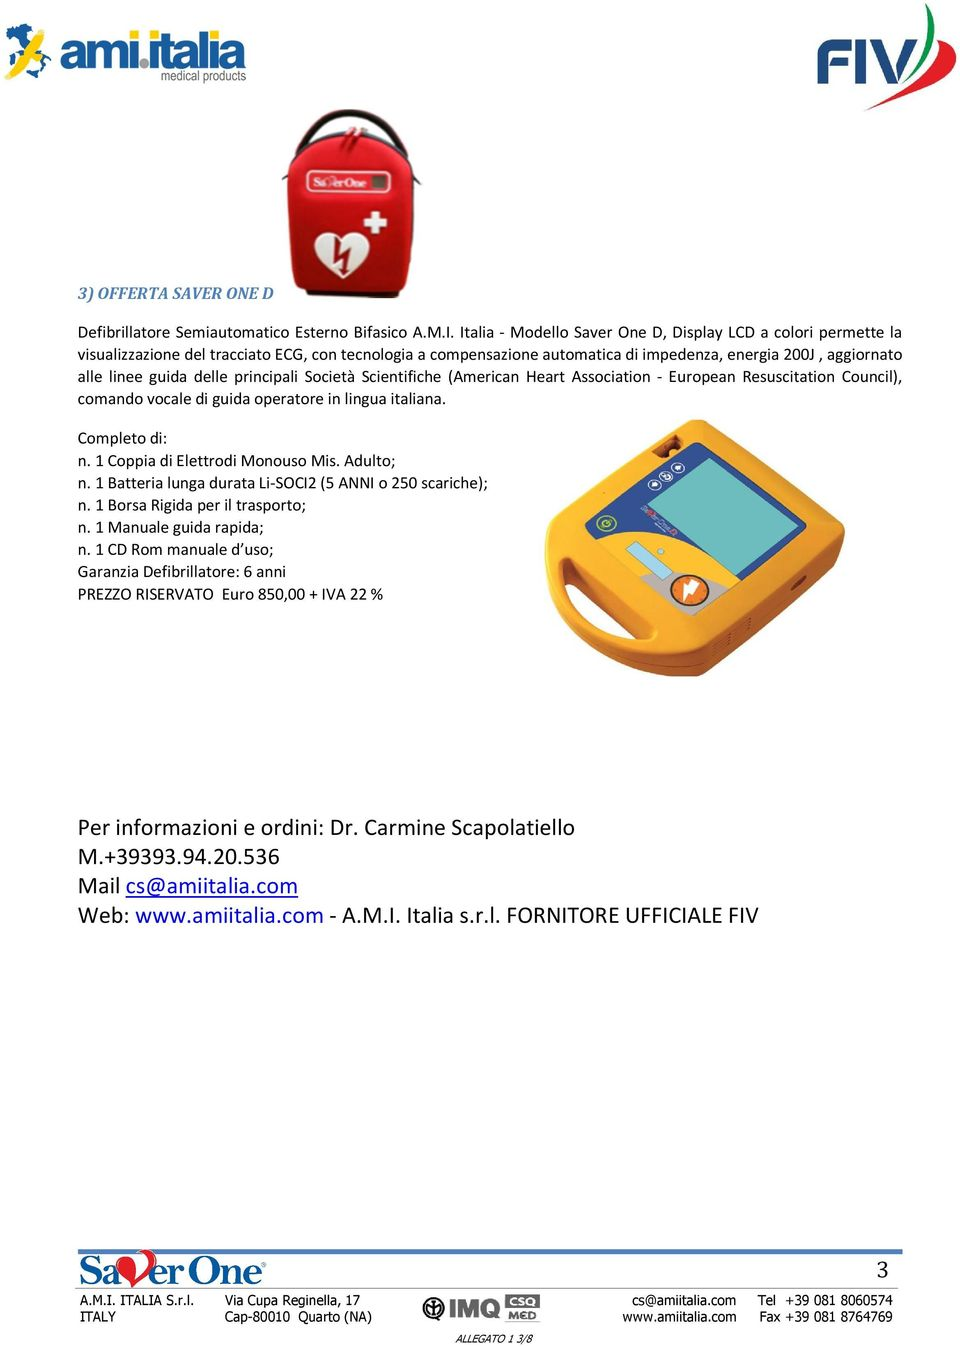 delle principali Società Scientifiche (American Heart Association - European Resuscitation Council), comando vocale di guida operatore in lingua italiana. Completo di: n.